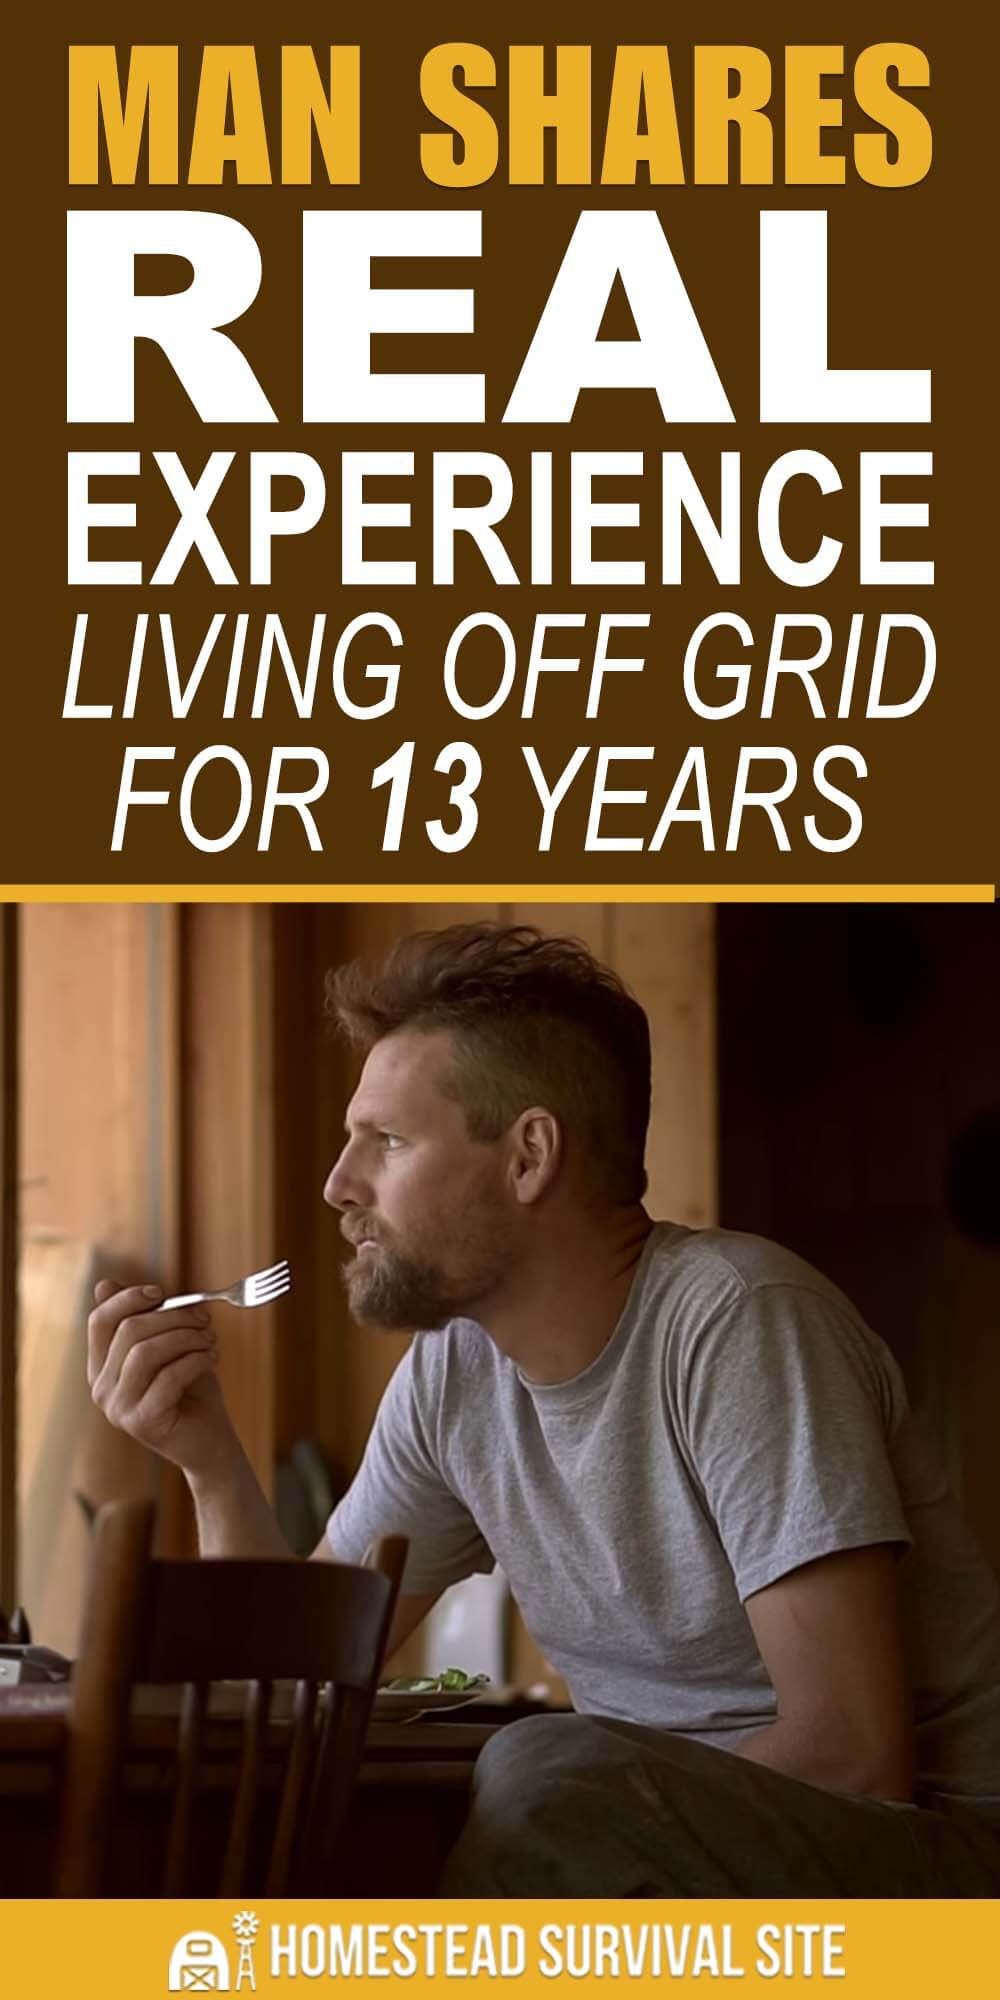 Man Shares REAL Experience Living Off Grid For 13 Years